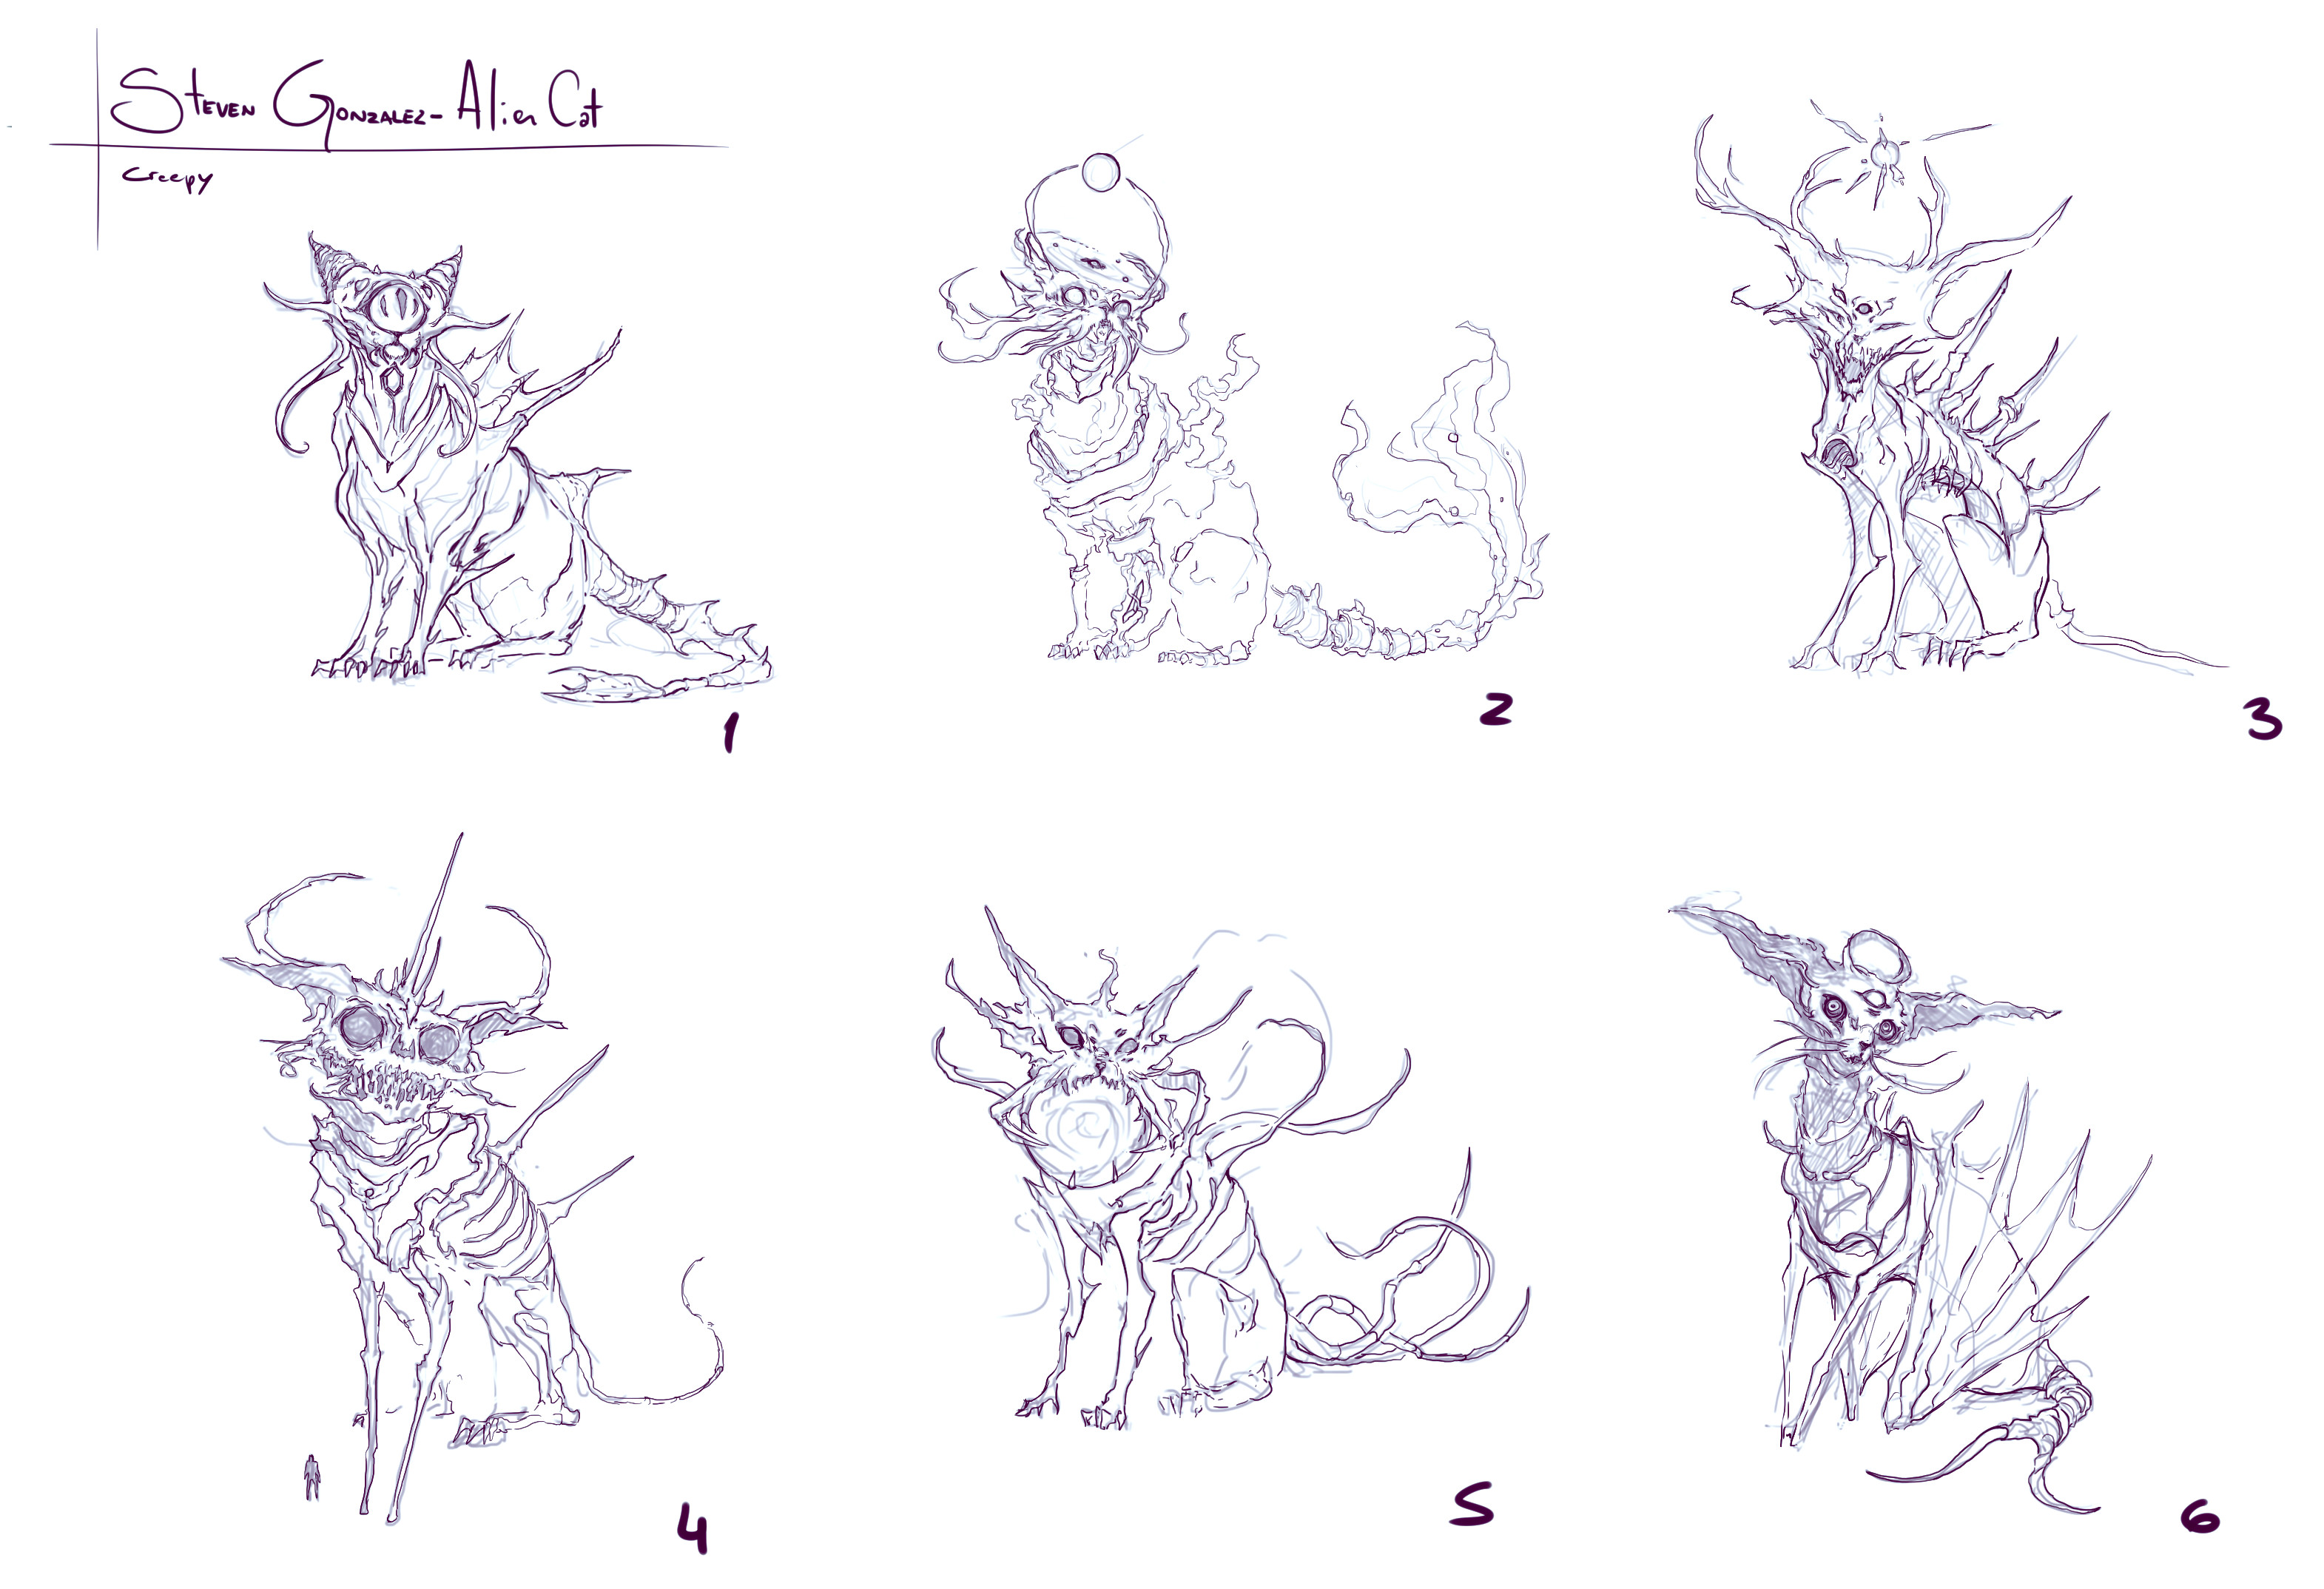 These are the initial sketches, I trully loved number 2 but number 1 was chosen with 2's elements in it, which I actually appreciate because 2 had a solar system in its head and I had no clue on how to paint it.